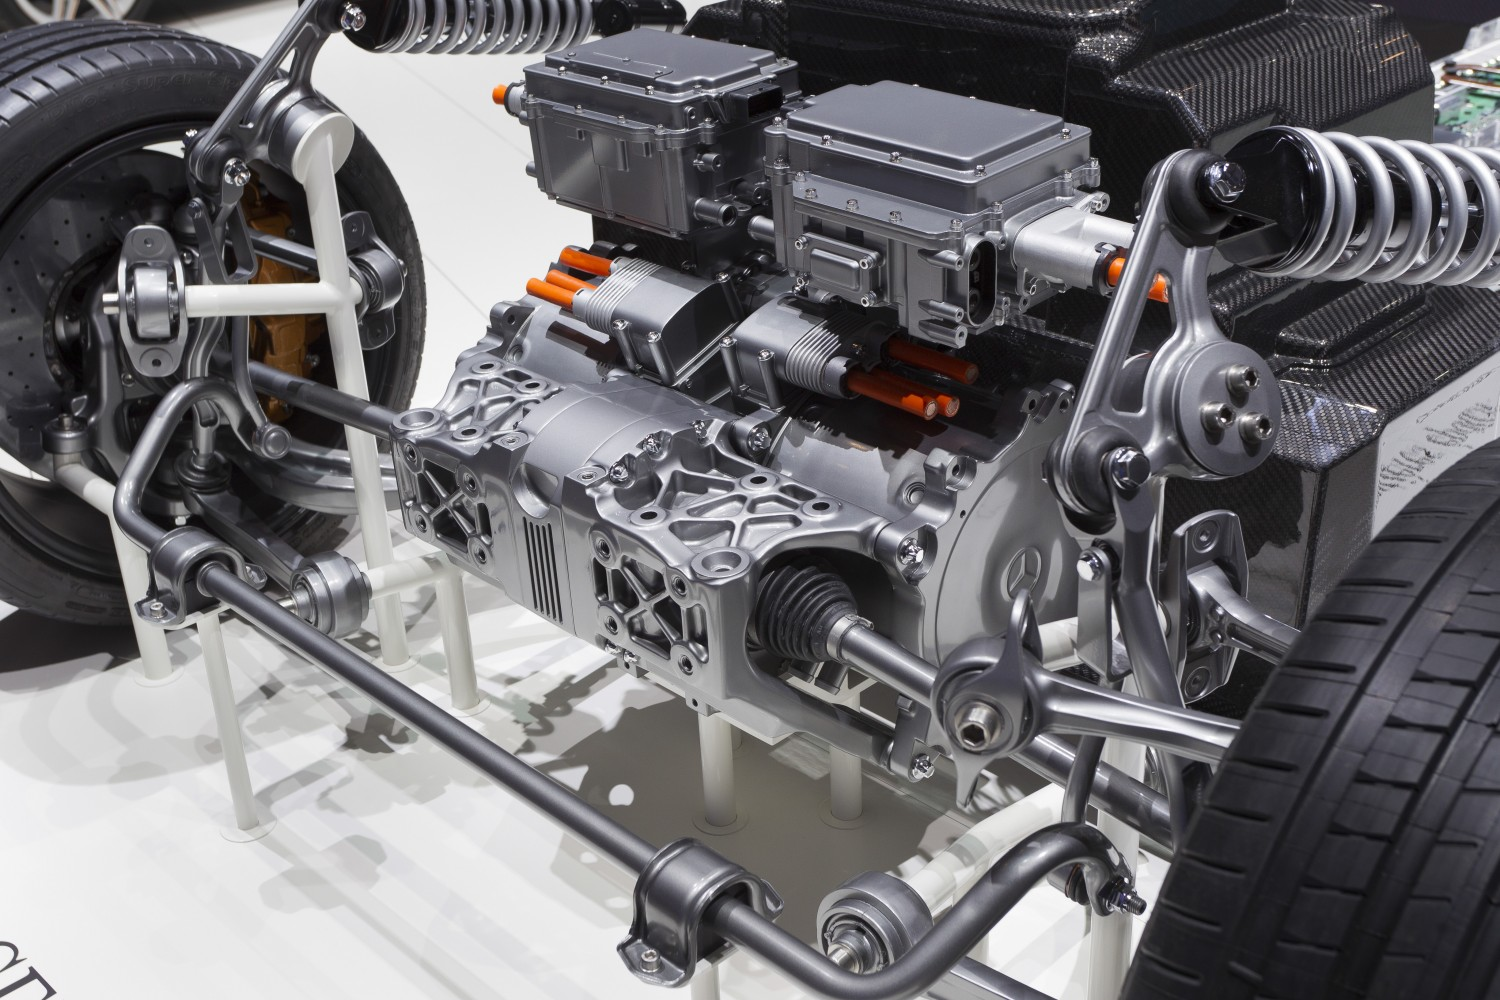 Mercedes Benz Engine Wiring Harness Diagram For Free 75w8j In Addition Furthermore Additionally Also Likewise 2010 12 04 174458 42001418